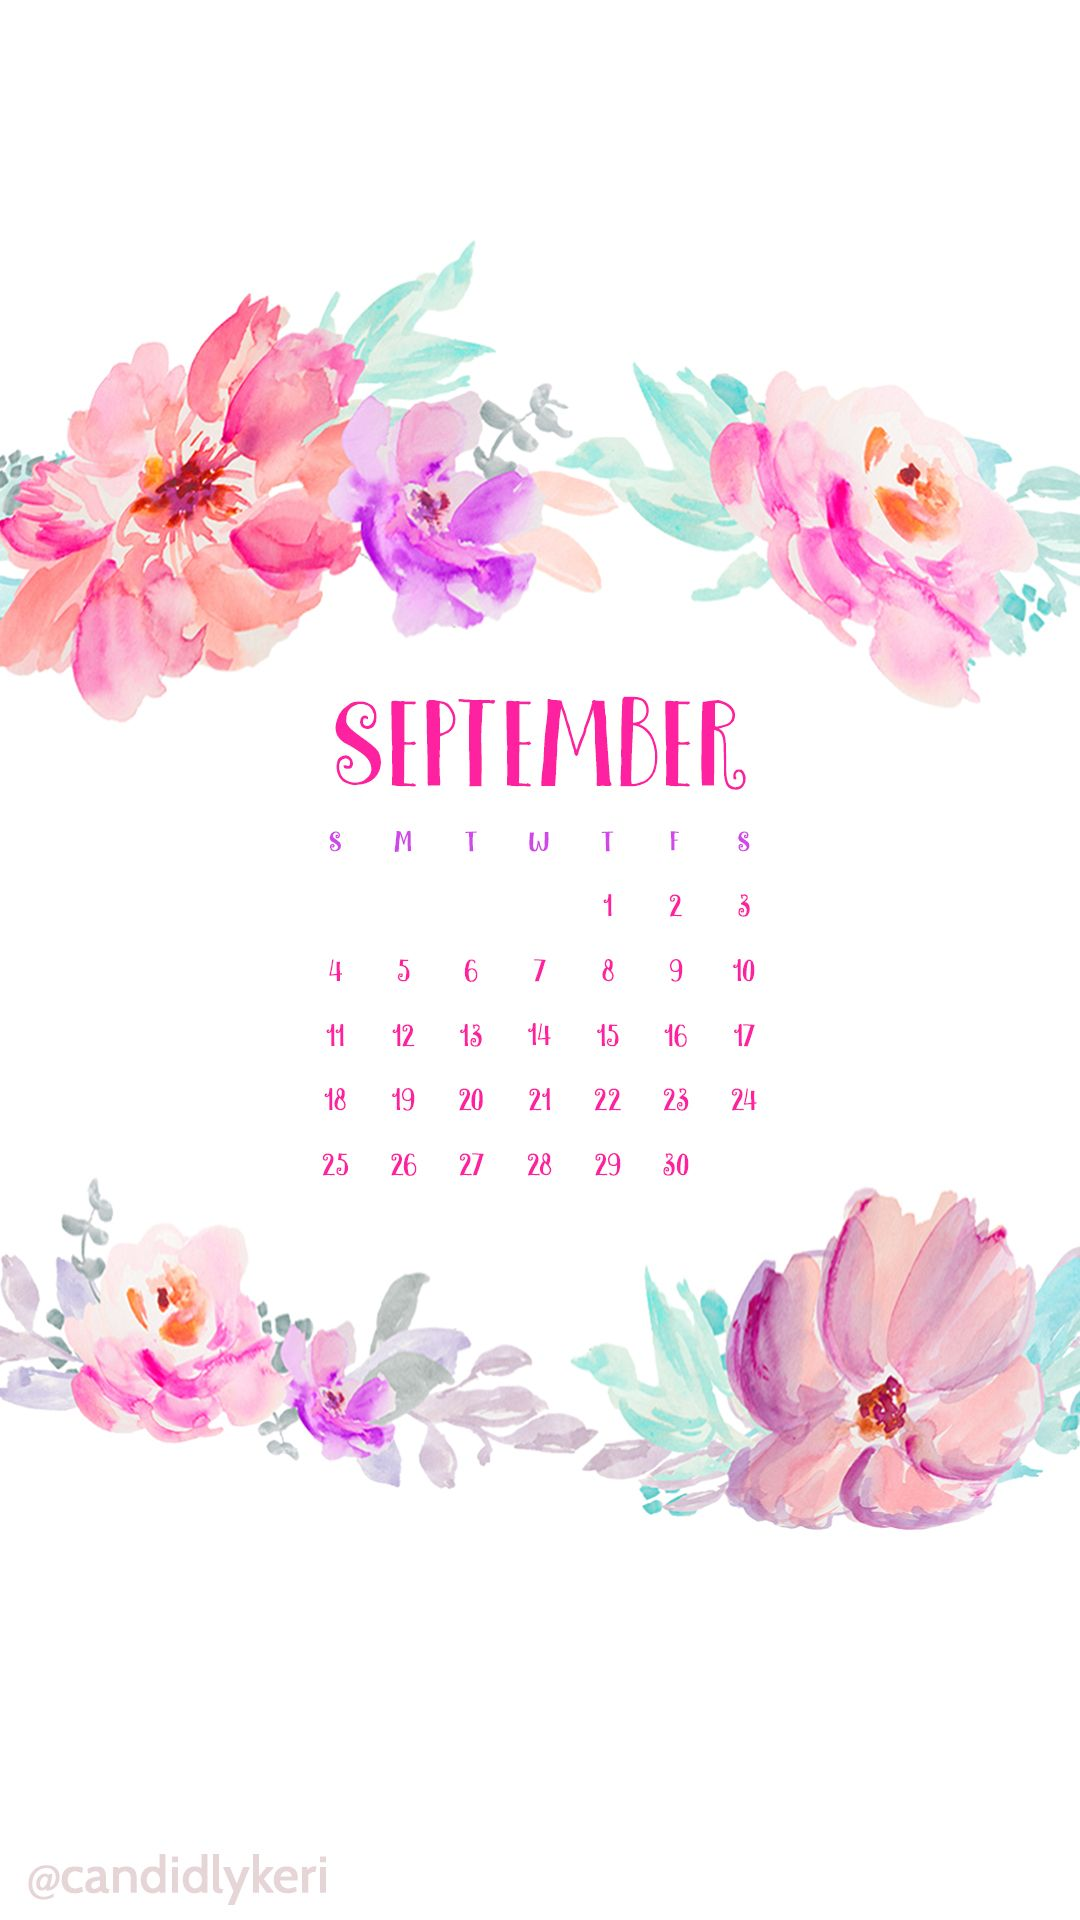 Flower crown watercolor september calendar 2016 wallpaper you can flower crown watercolor september calendar 2016 wallpaper you can download for free on the blog izmirmasajfo